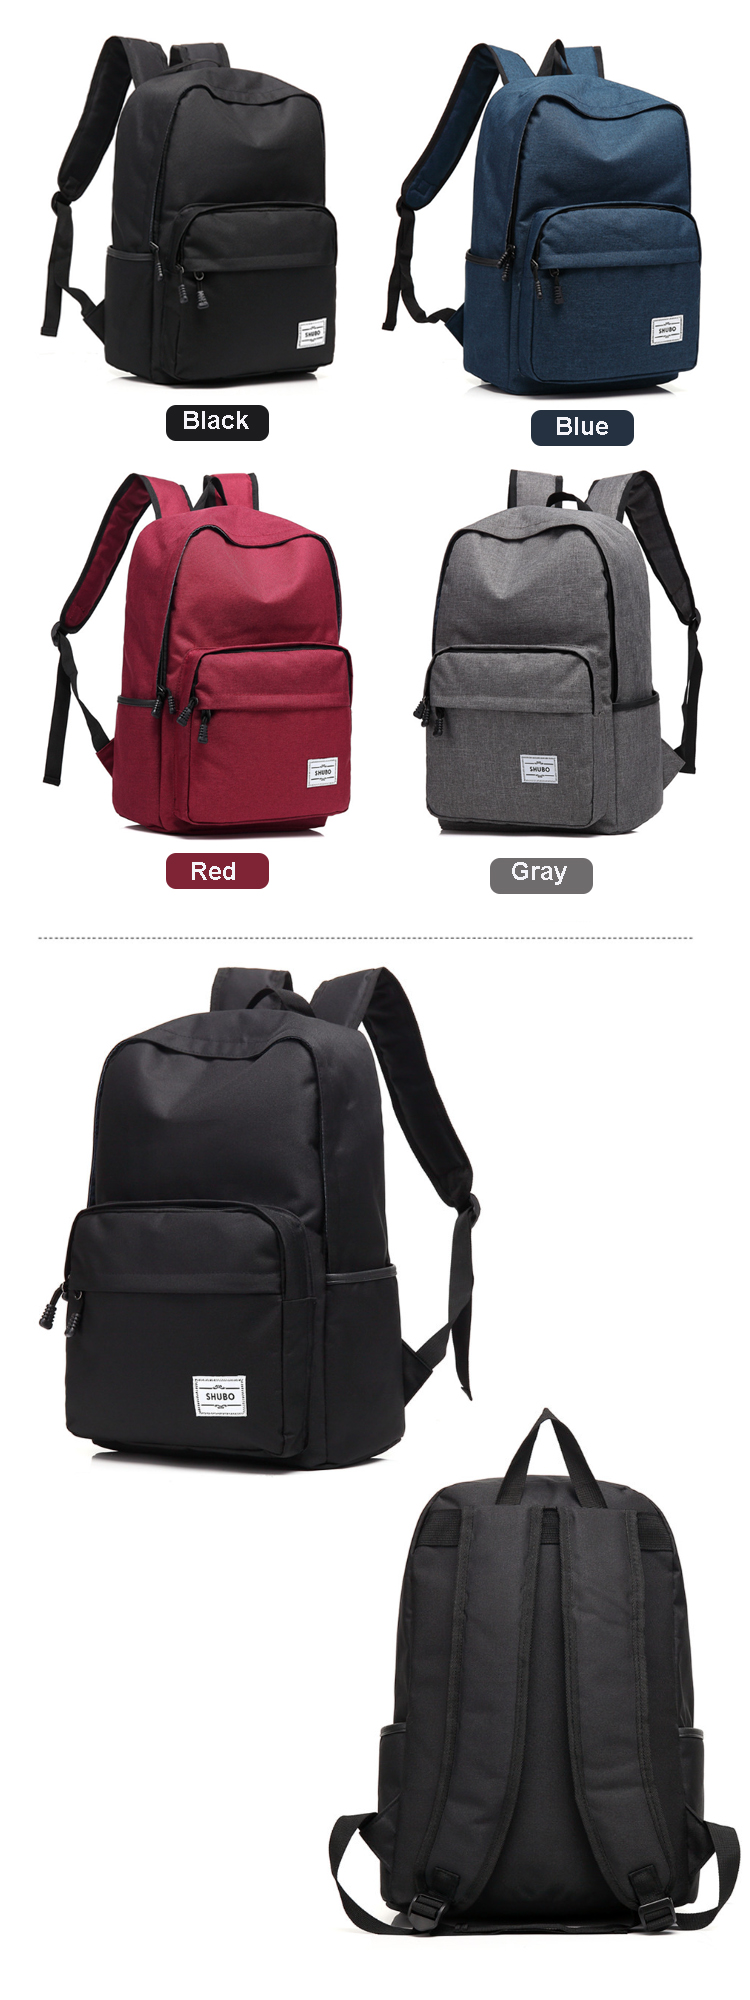 Osgoodway Casual Student Shoulders Backpack Polyester College School Backpack with Laptop Pocket